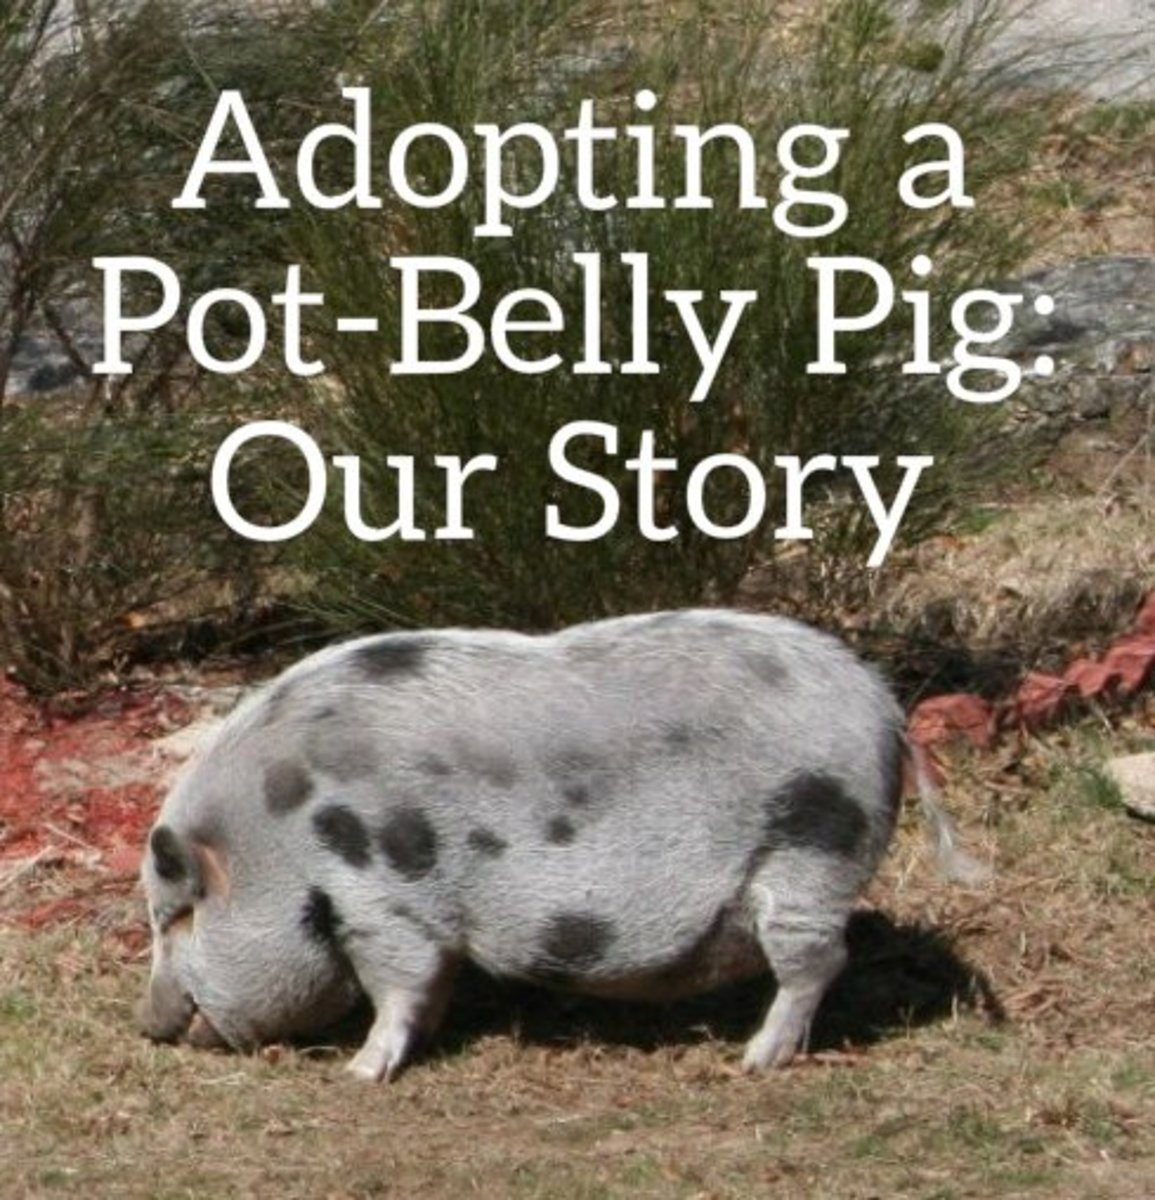 Adopting and caring for a domesticated pot belly pig pethelpful publicscrutiny Choice Image